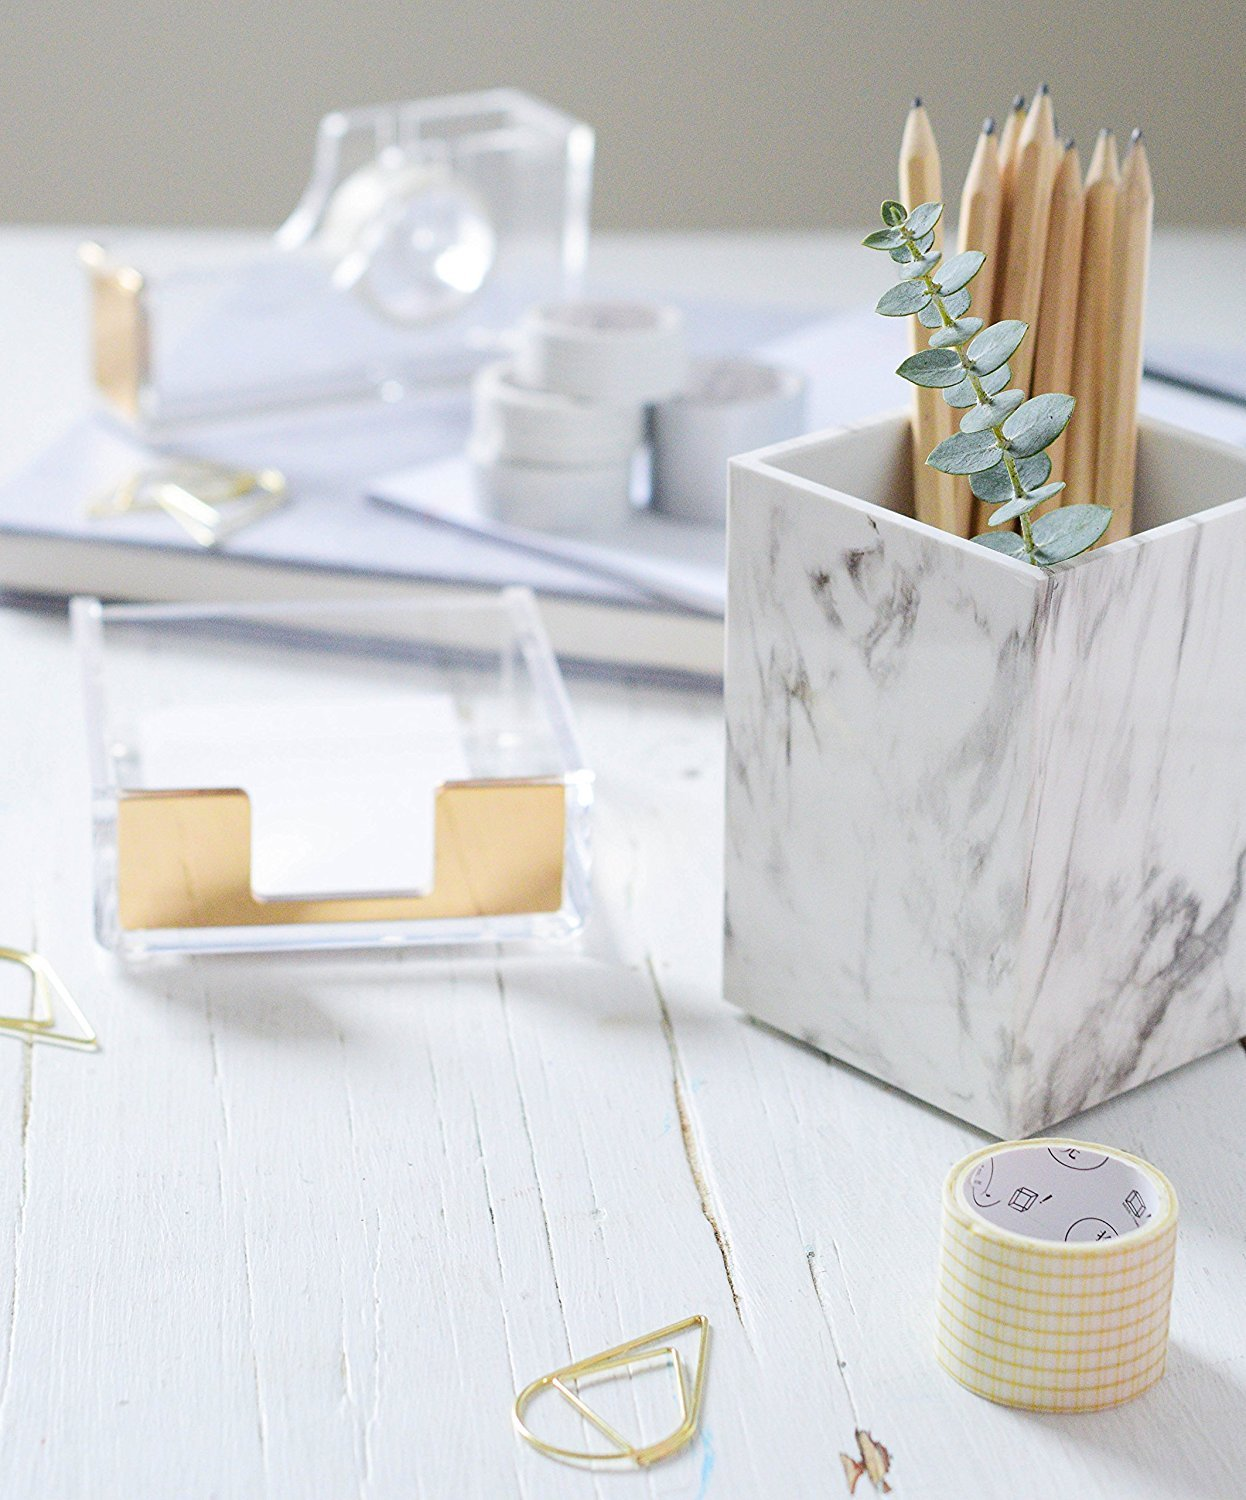 Umiko Decorative Unique Modern White Marble Design Pen and Pencil Cup Holder Stand Organizer Box Case for Desk Home Office Officemate Desktop Classroom School by Umiko (Image #3)